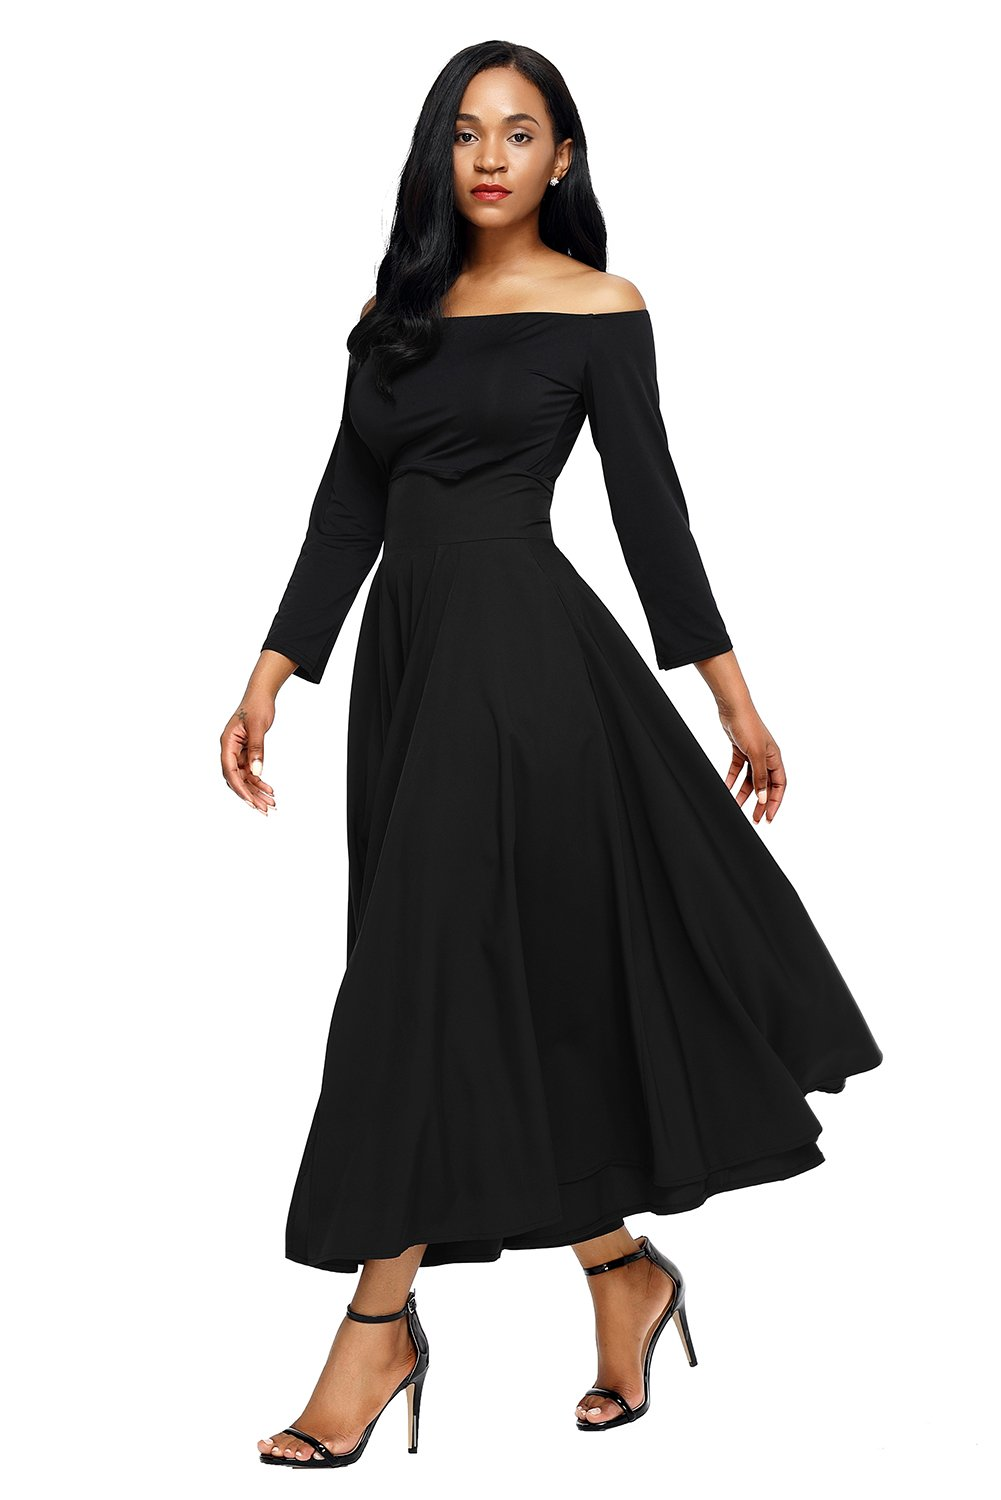 a1f310569ac Asvivid Women s Solid High Waisted Full Midi Skirt Pocket Long Skirt Dresses  XX-Large Black - AF65053-2-XXL-C   Casual   Clothing